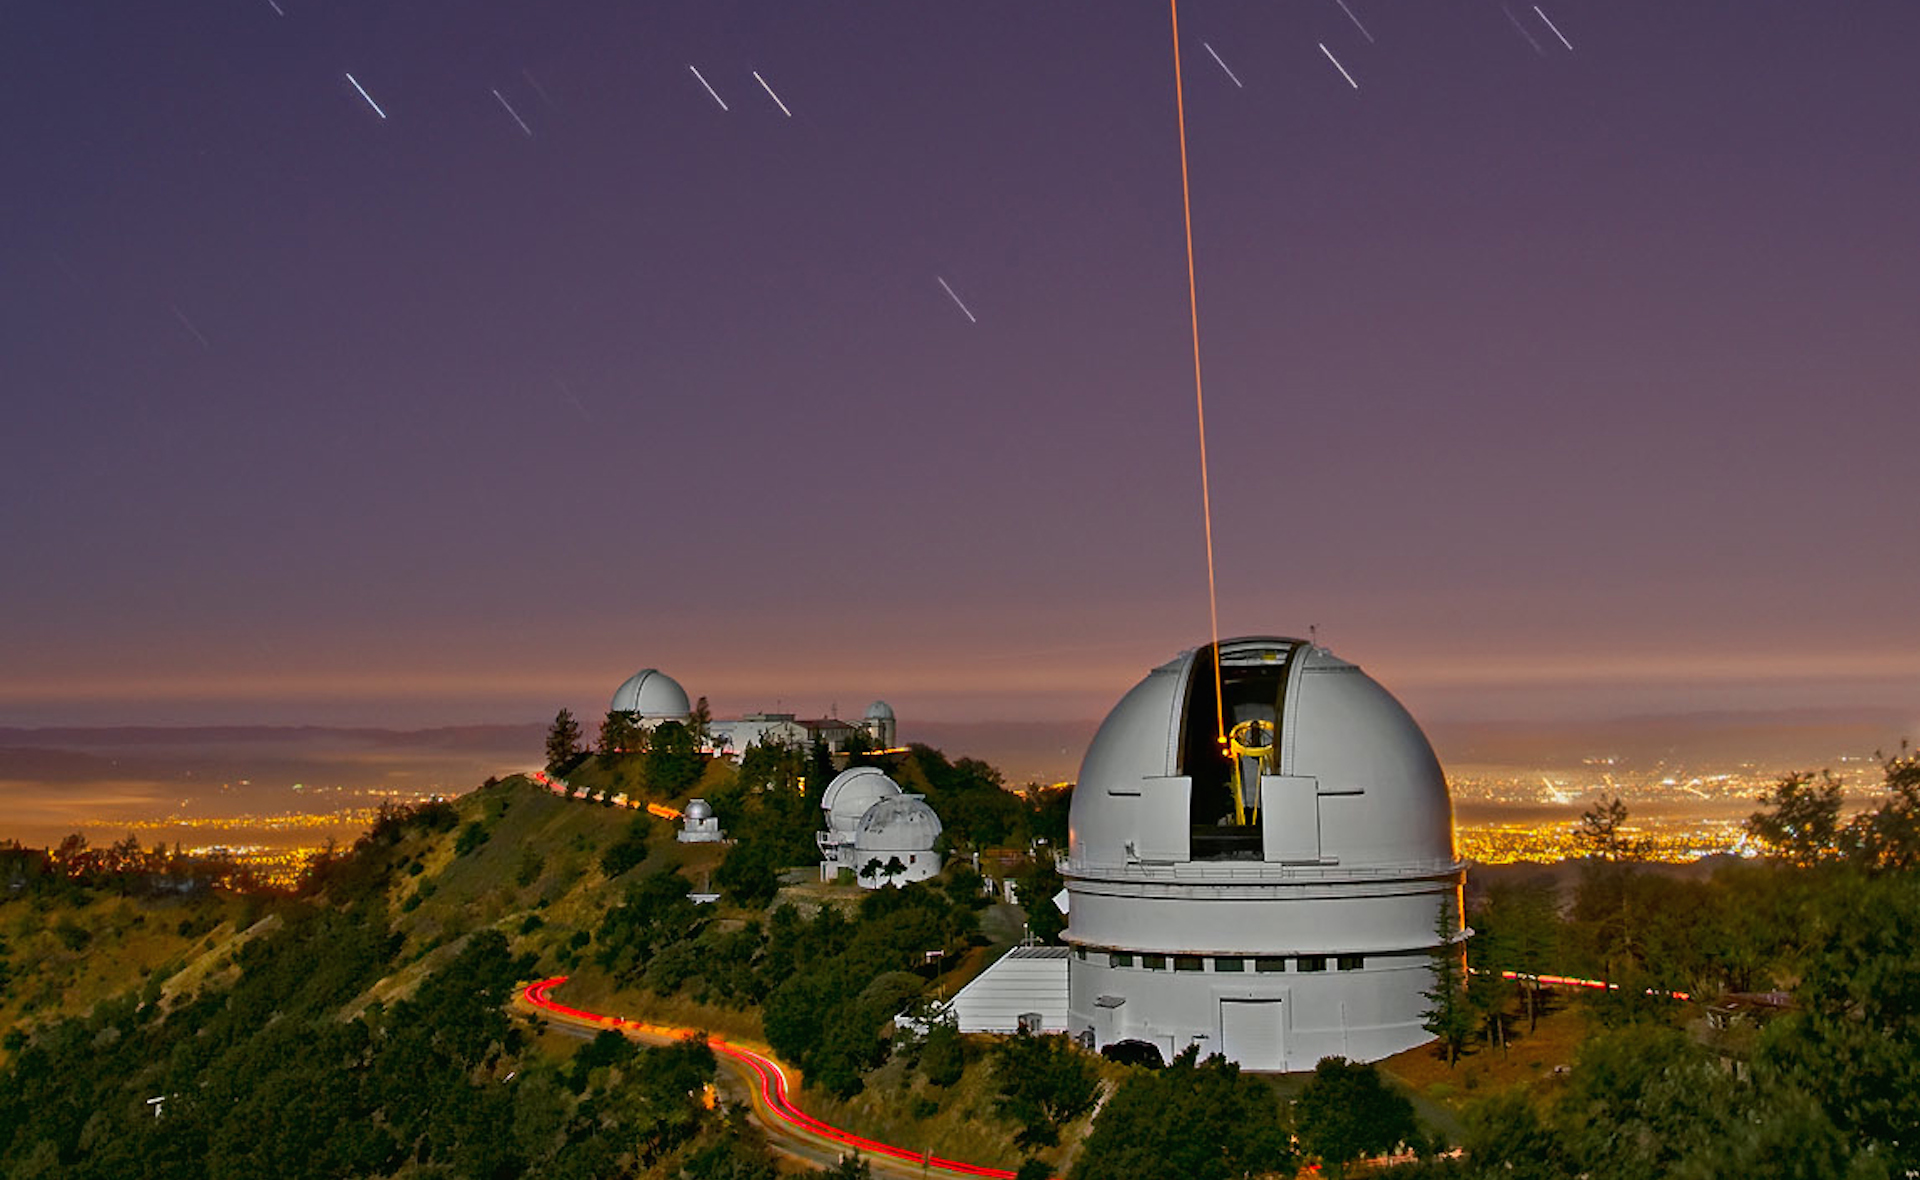 astronomy observatory with telescope - photo #48